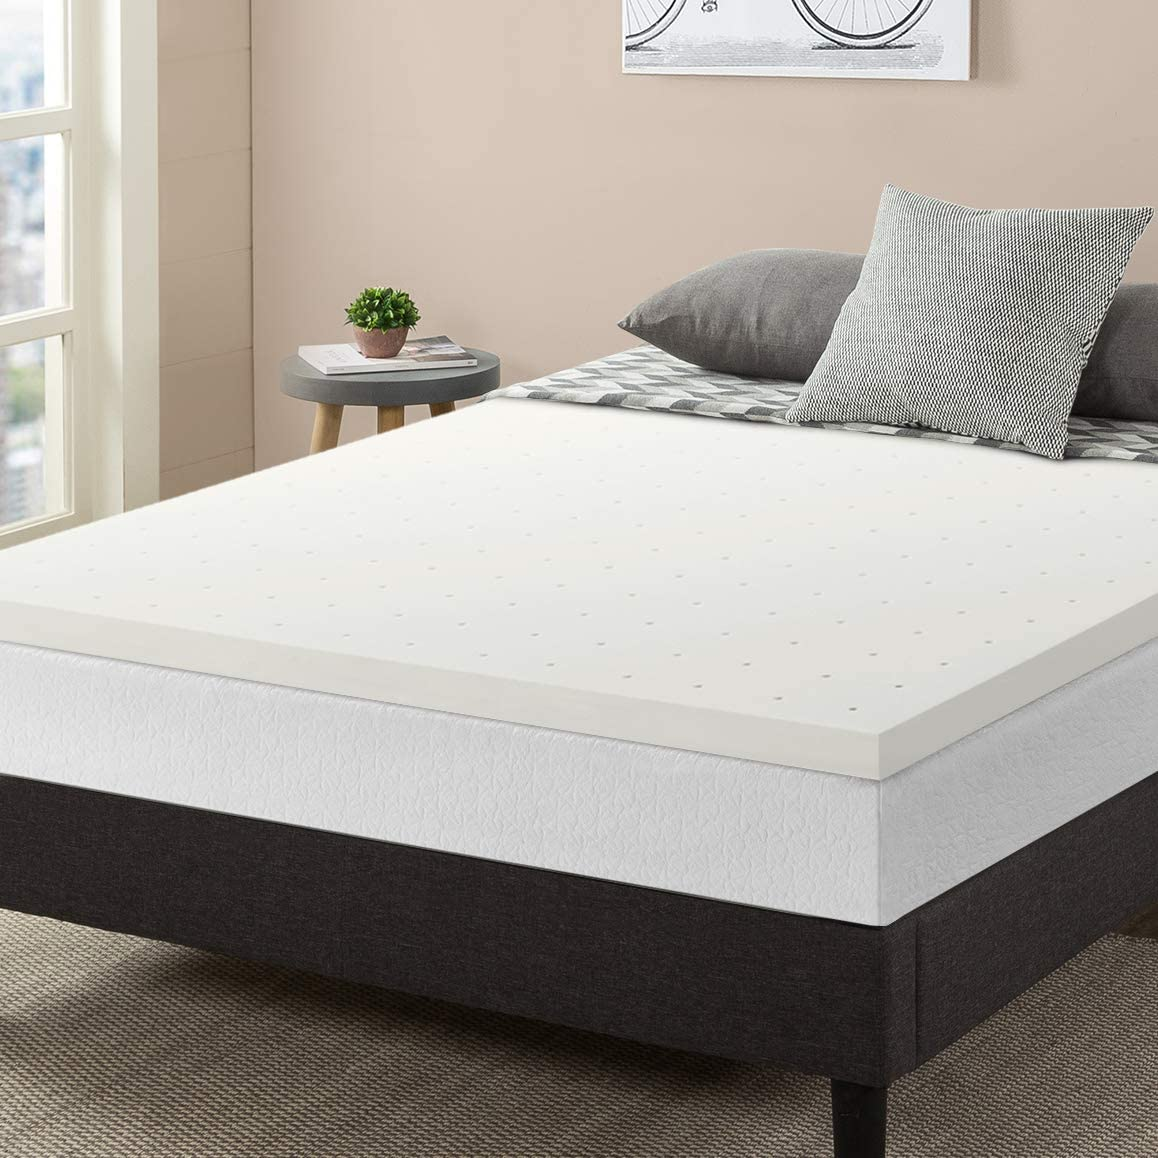 "Best Price Mattress Topper Queen, 2.5"" Memory Foam Mattress Topper with Certipur-US Certified Ventilated Cooling, Queen Size"